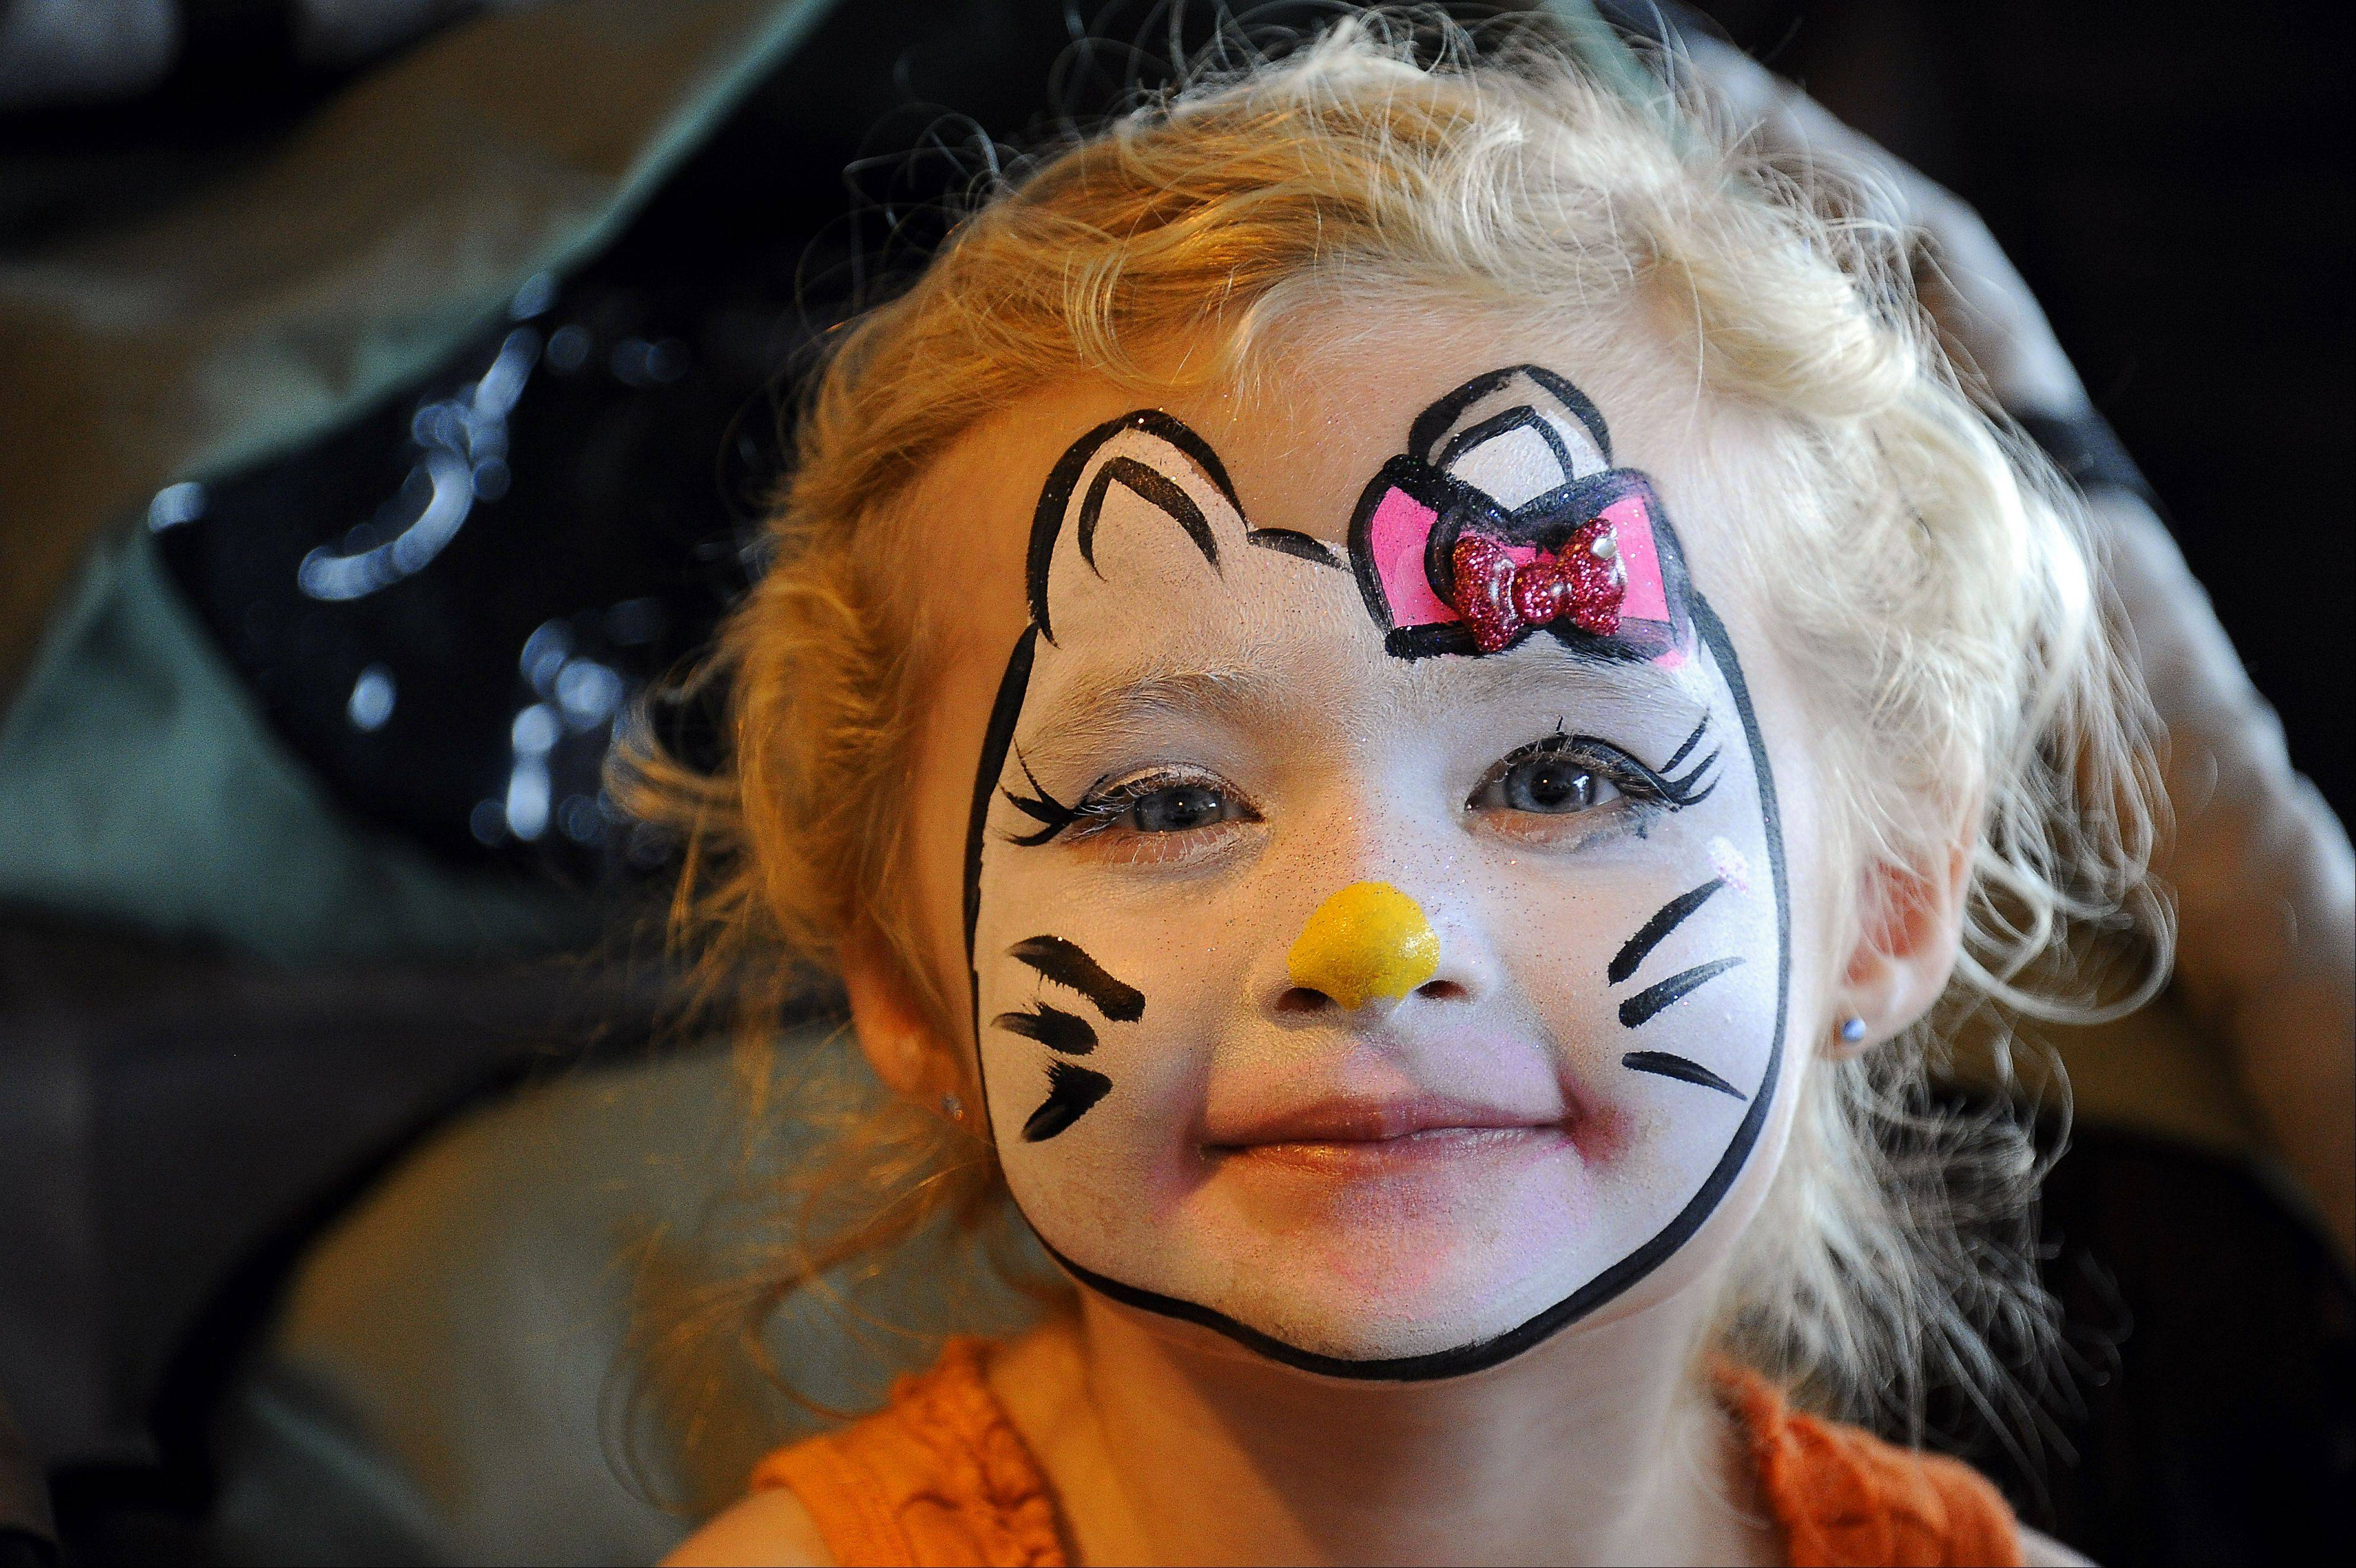 Looking like the cat in the hat with her painted face, Savannah Alexander, 3, of Pingree Grove shows her excitement with an award winning smile on the second day of Septemberfest in Schaumburg on Saturday.